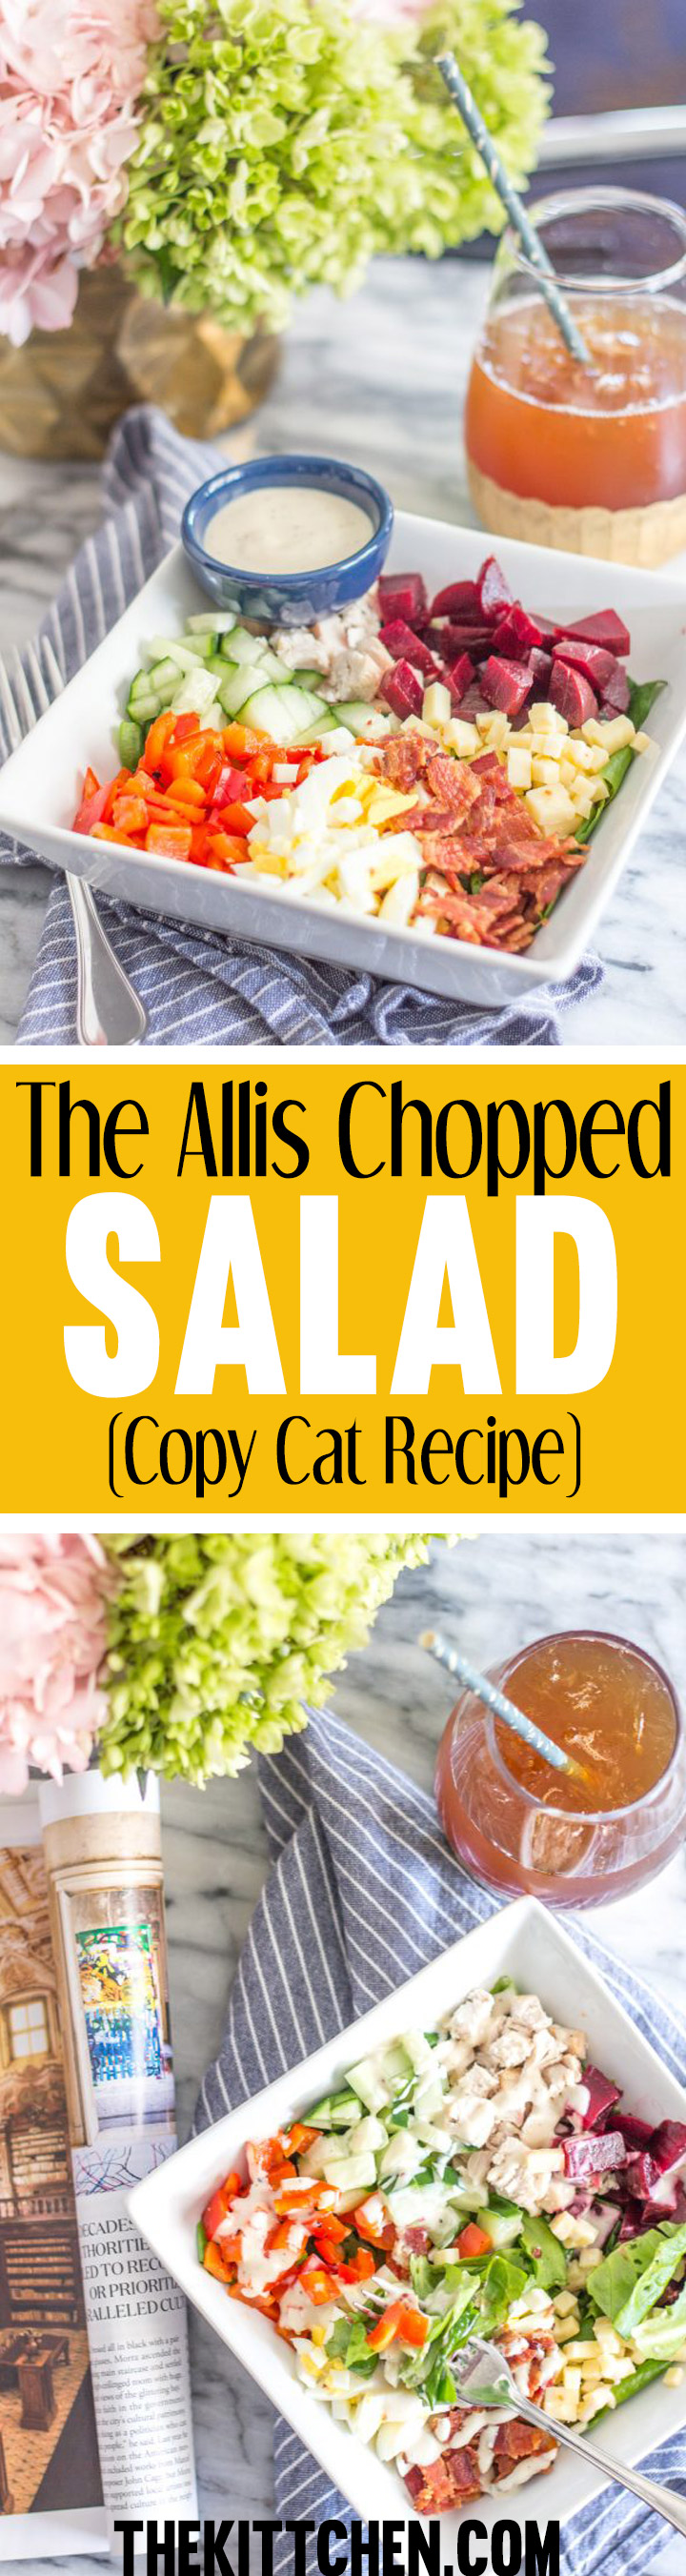 The Allis Chopped Salad is my all-time favorite salad. And since I can't have lunch at The Allis everyday, I recreated the recipe so that I could make it at home. This salad has the perfect combination of freshly chopped vegetables and protein.